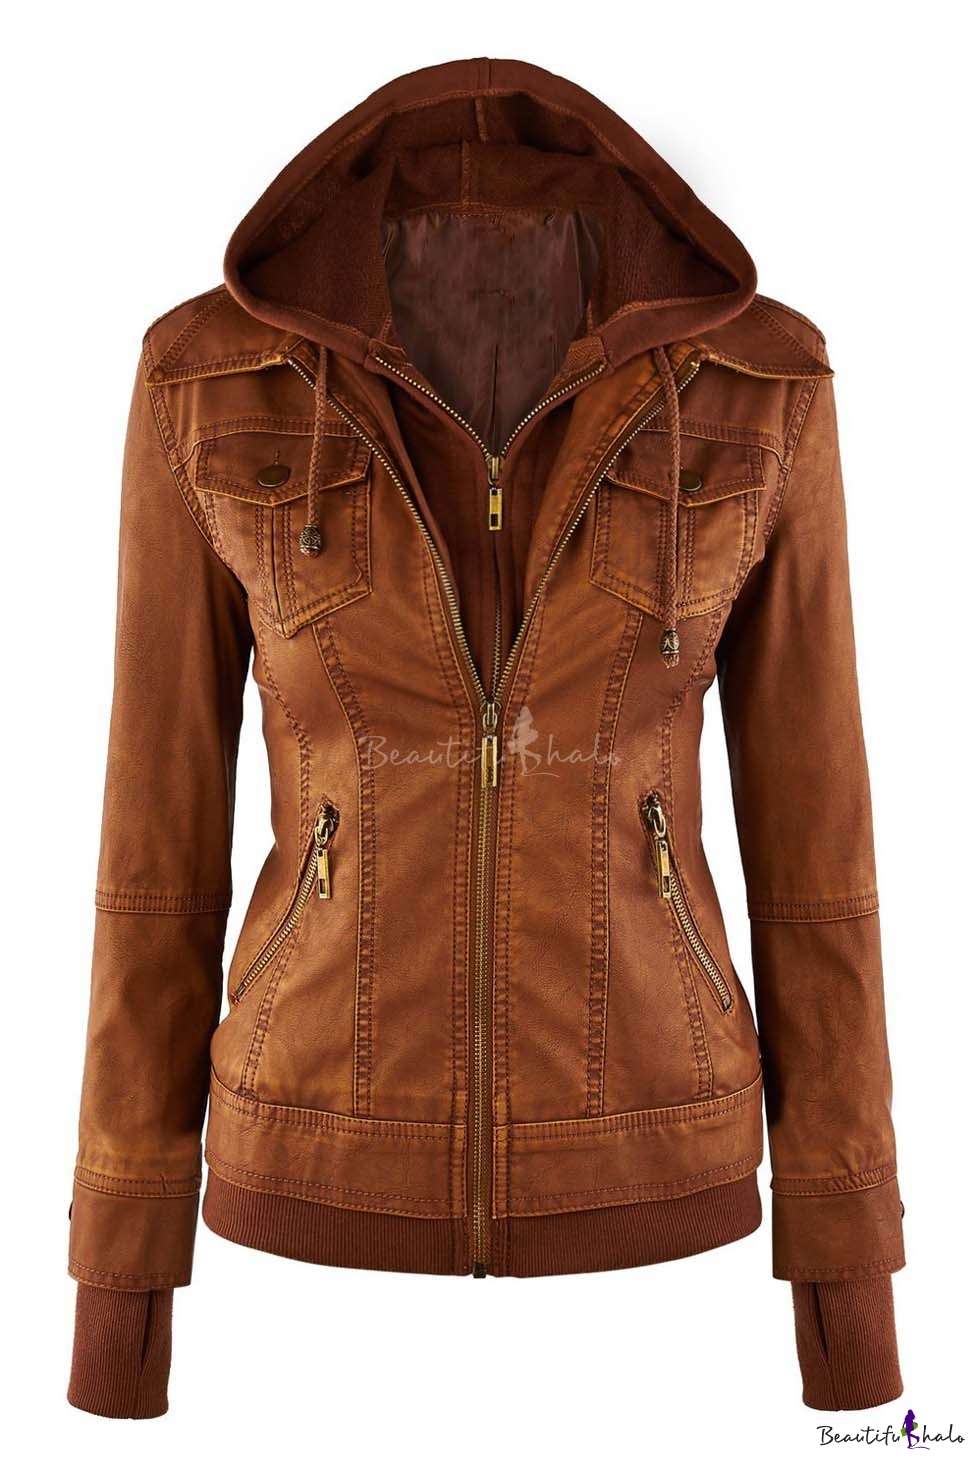 From bomber jackets, to motorcycle styles, studded collars, and colored leather, you'll find a variety of women's leather coats on worldofweapons.tk Sorted into convenient categories, we feature contemporary, relaxed, and timeless styles that never go out of fashion.